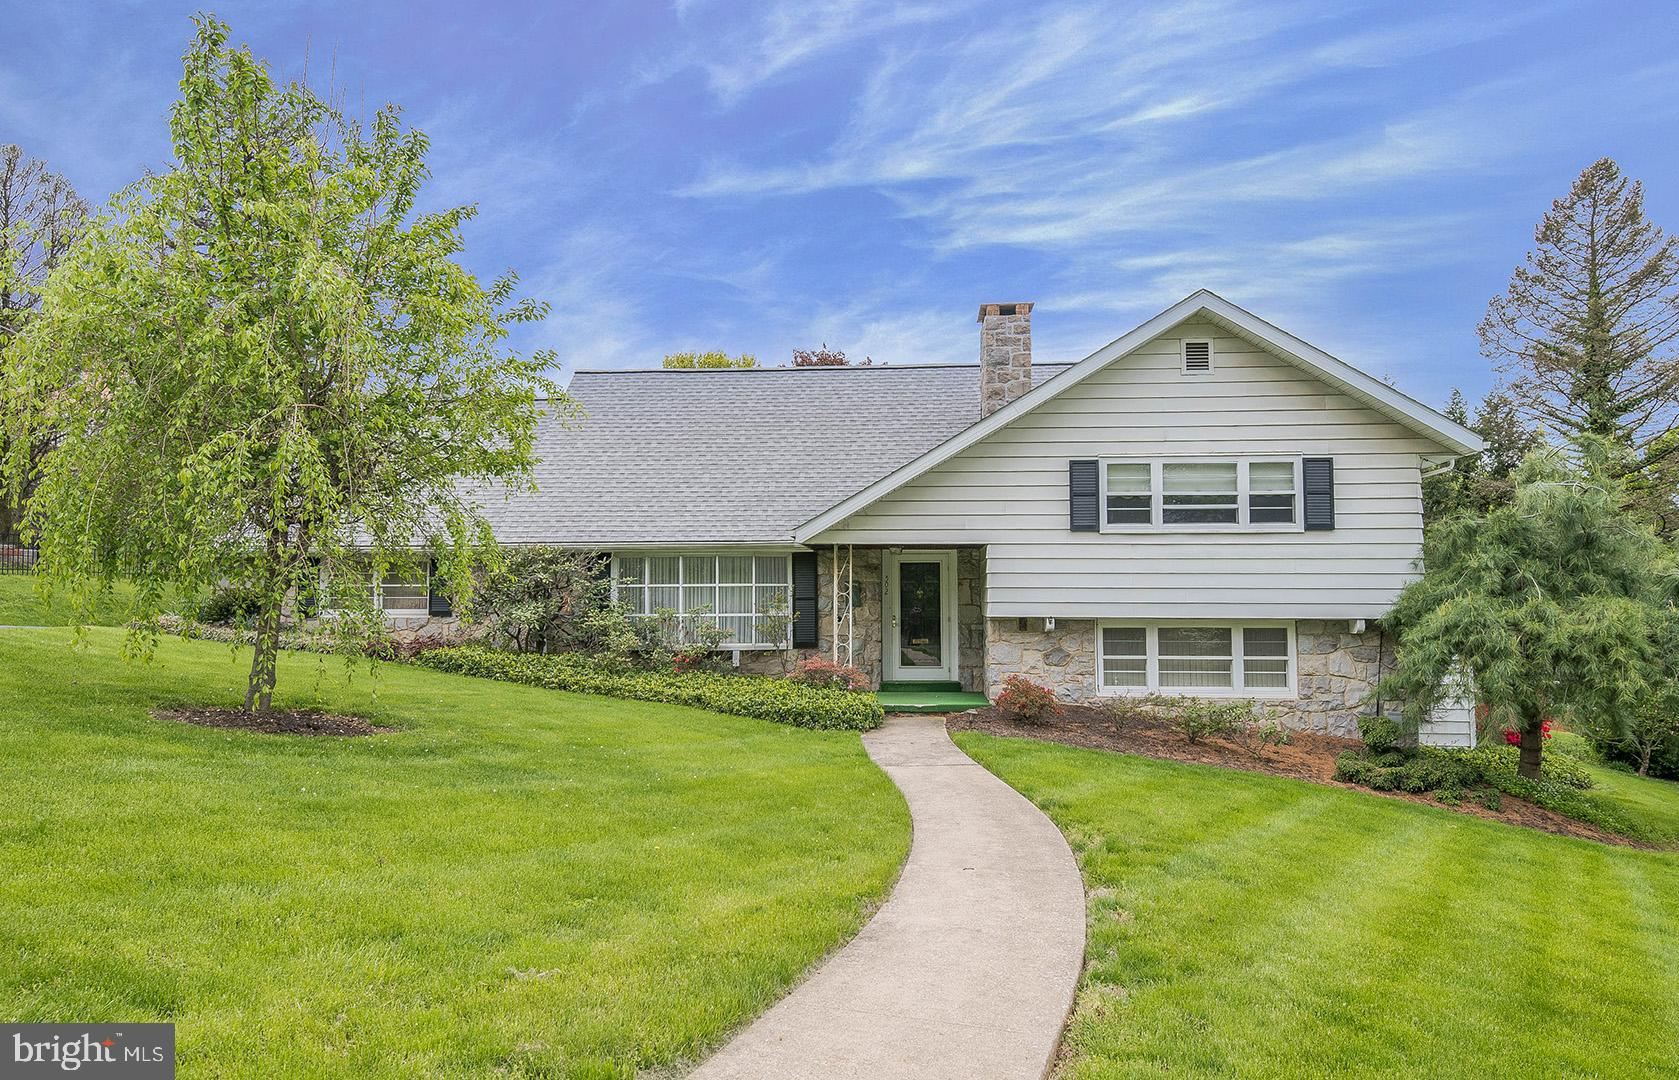 502 SNYDER ROAD, READING, PA 19609